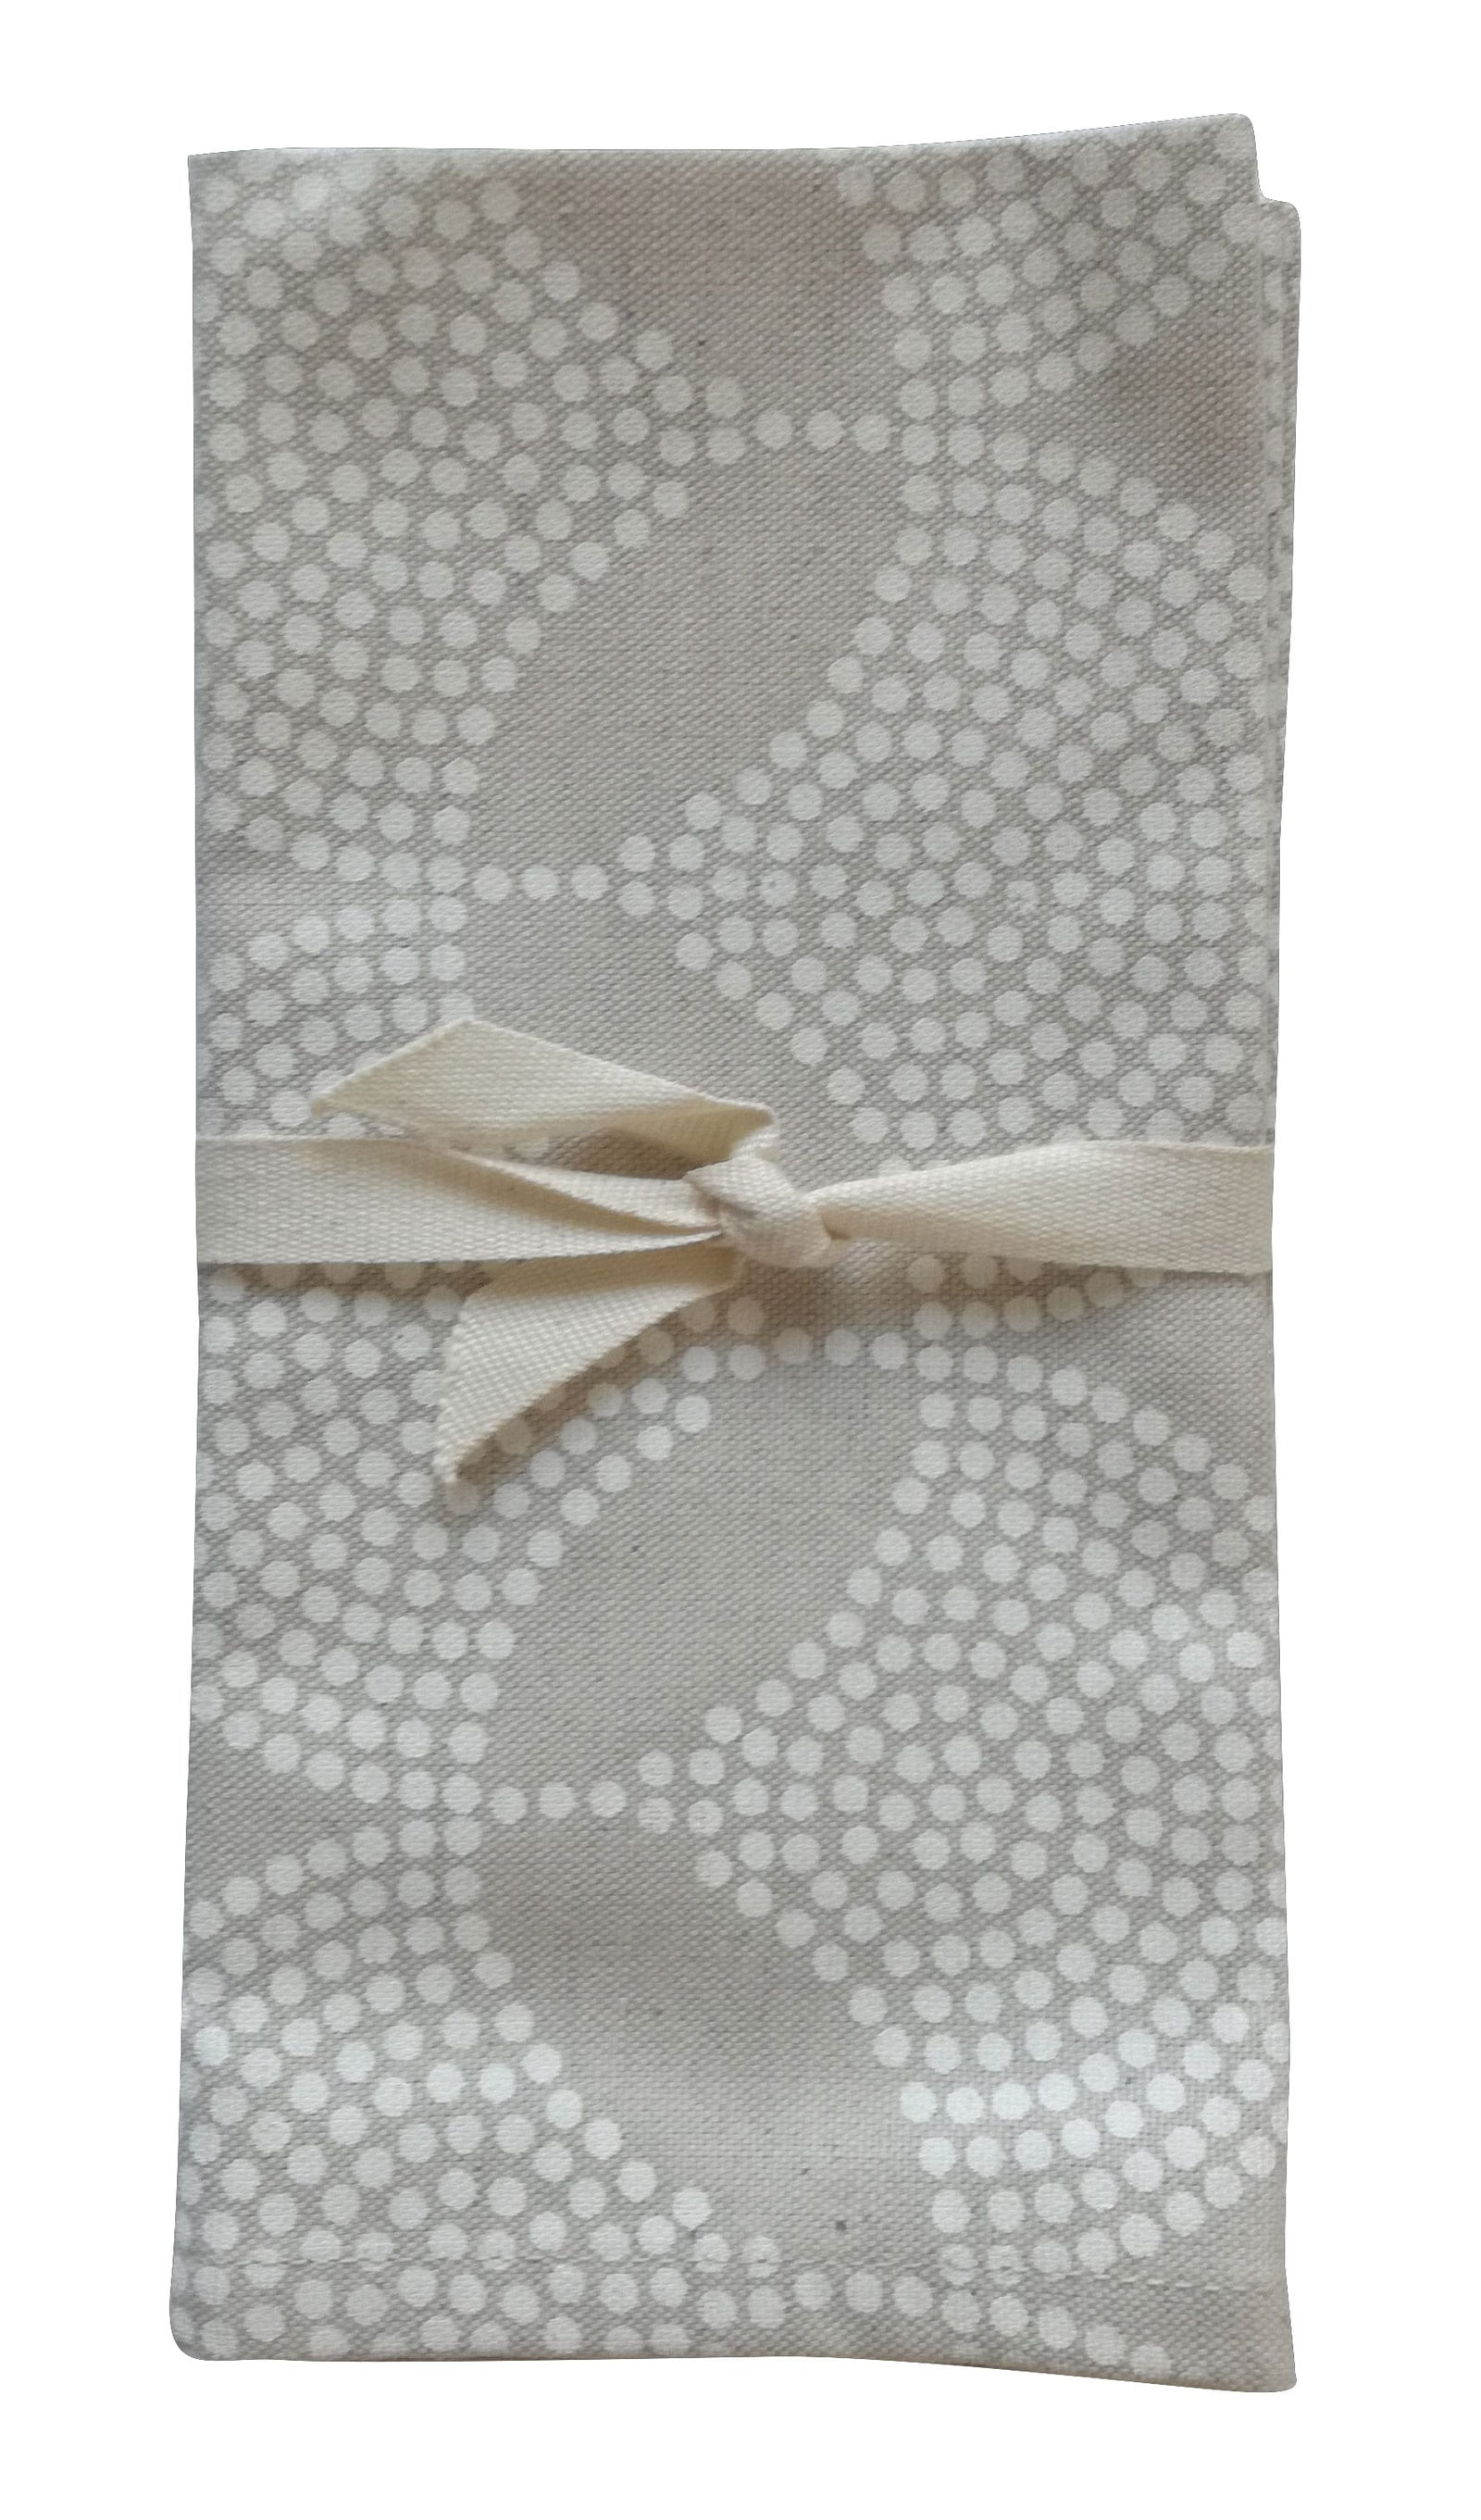 Sunset Radiance White Napkin Set